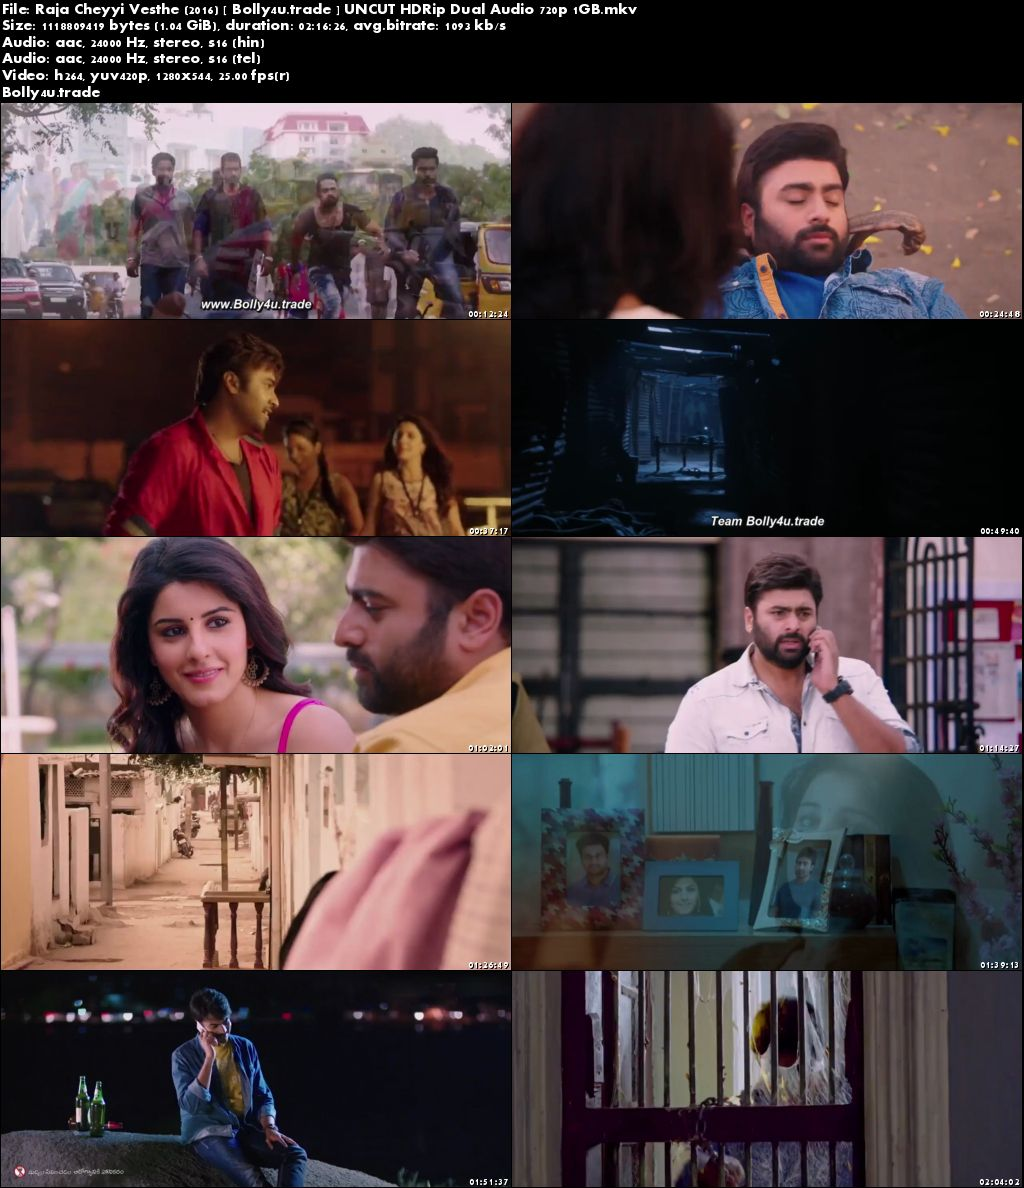 Raja Cheyyi Vesthe 2016 HDRip 400MB UNCUT Hindi Dual Audio 480p Download